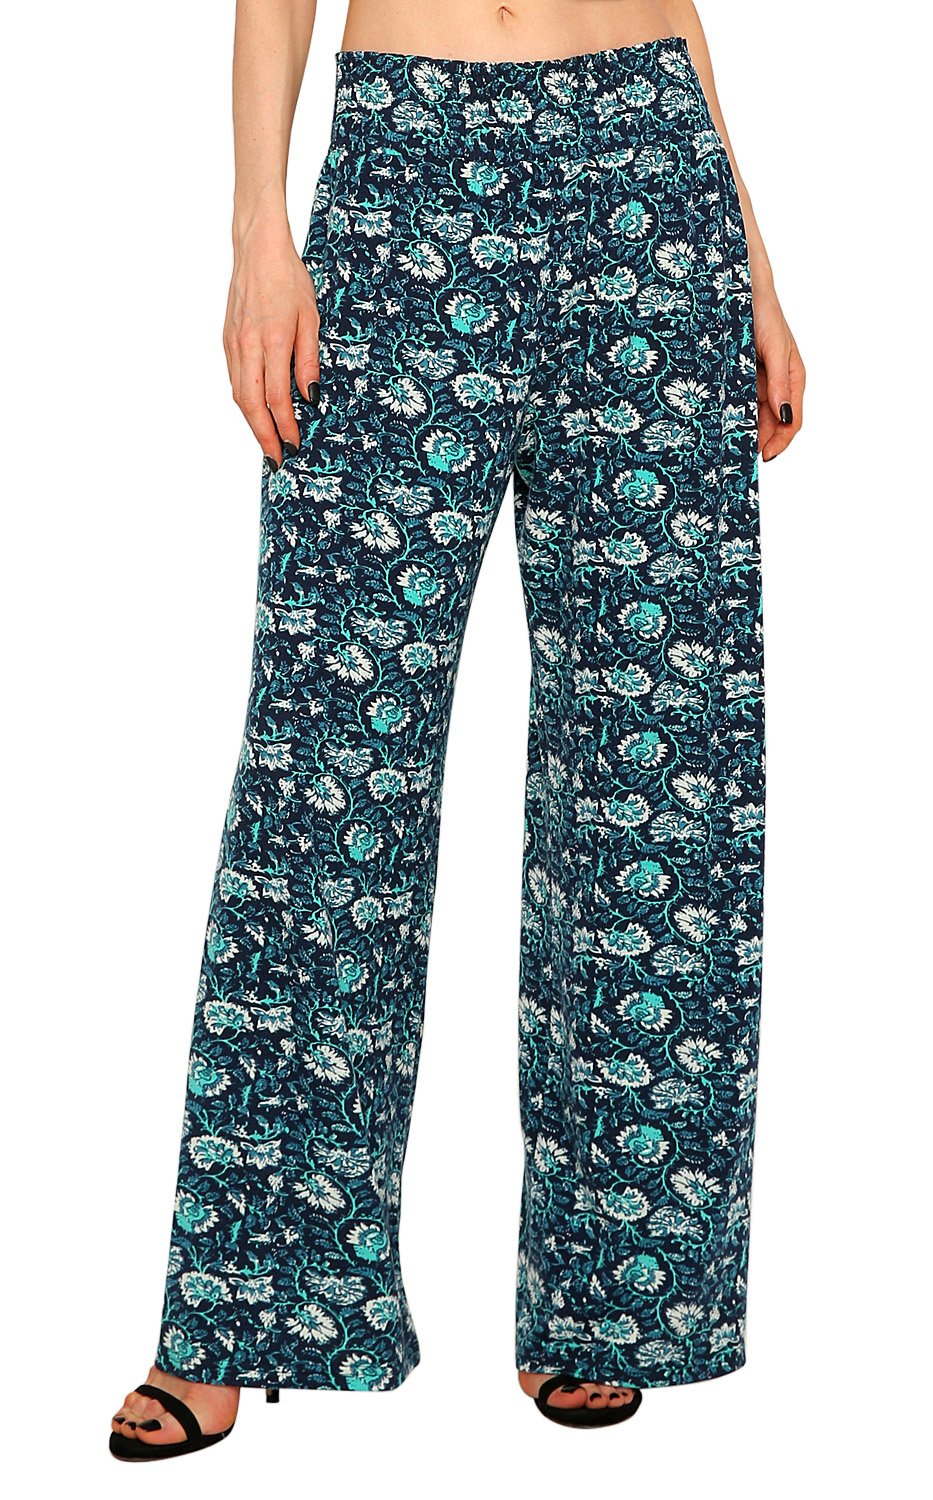 Urban CoCo Women's Boho Palazzo Pants Wide Leg Lounge Pants (XL, 3)